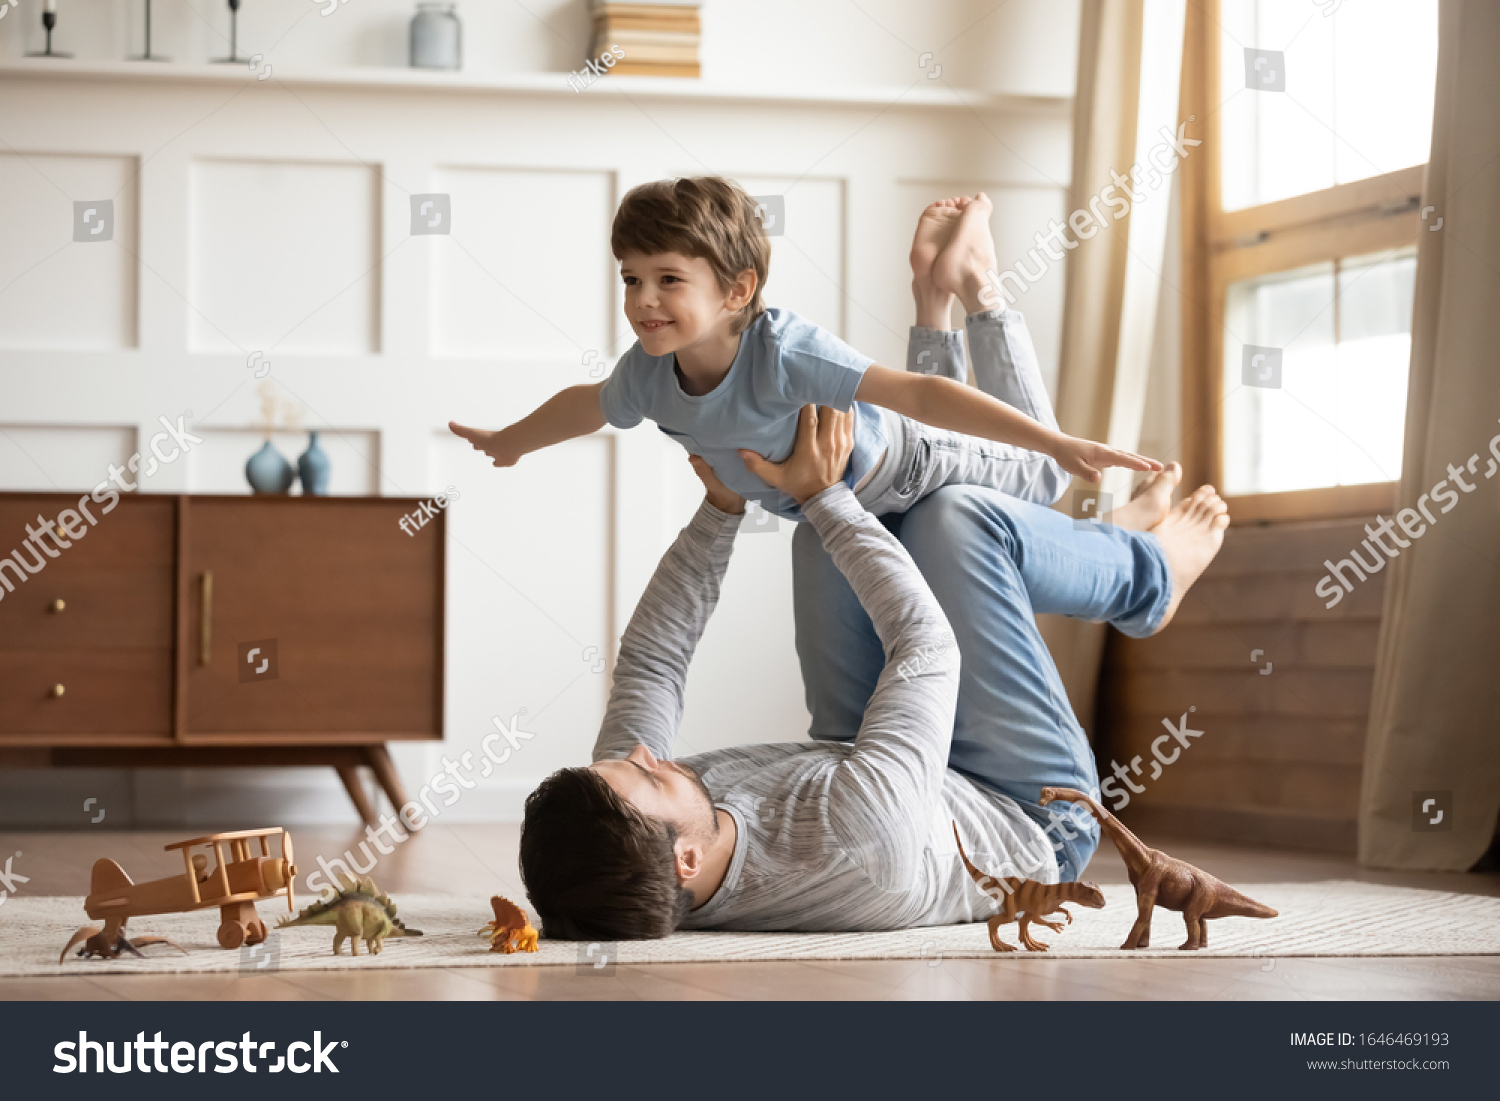 Joyful young man father lying on carpet floor, lifting excited happy little child son at home. Full length carefree two generations family having fun, practicing acroyoga in pair in living room. #1646469193